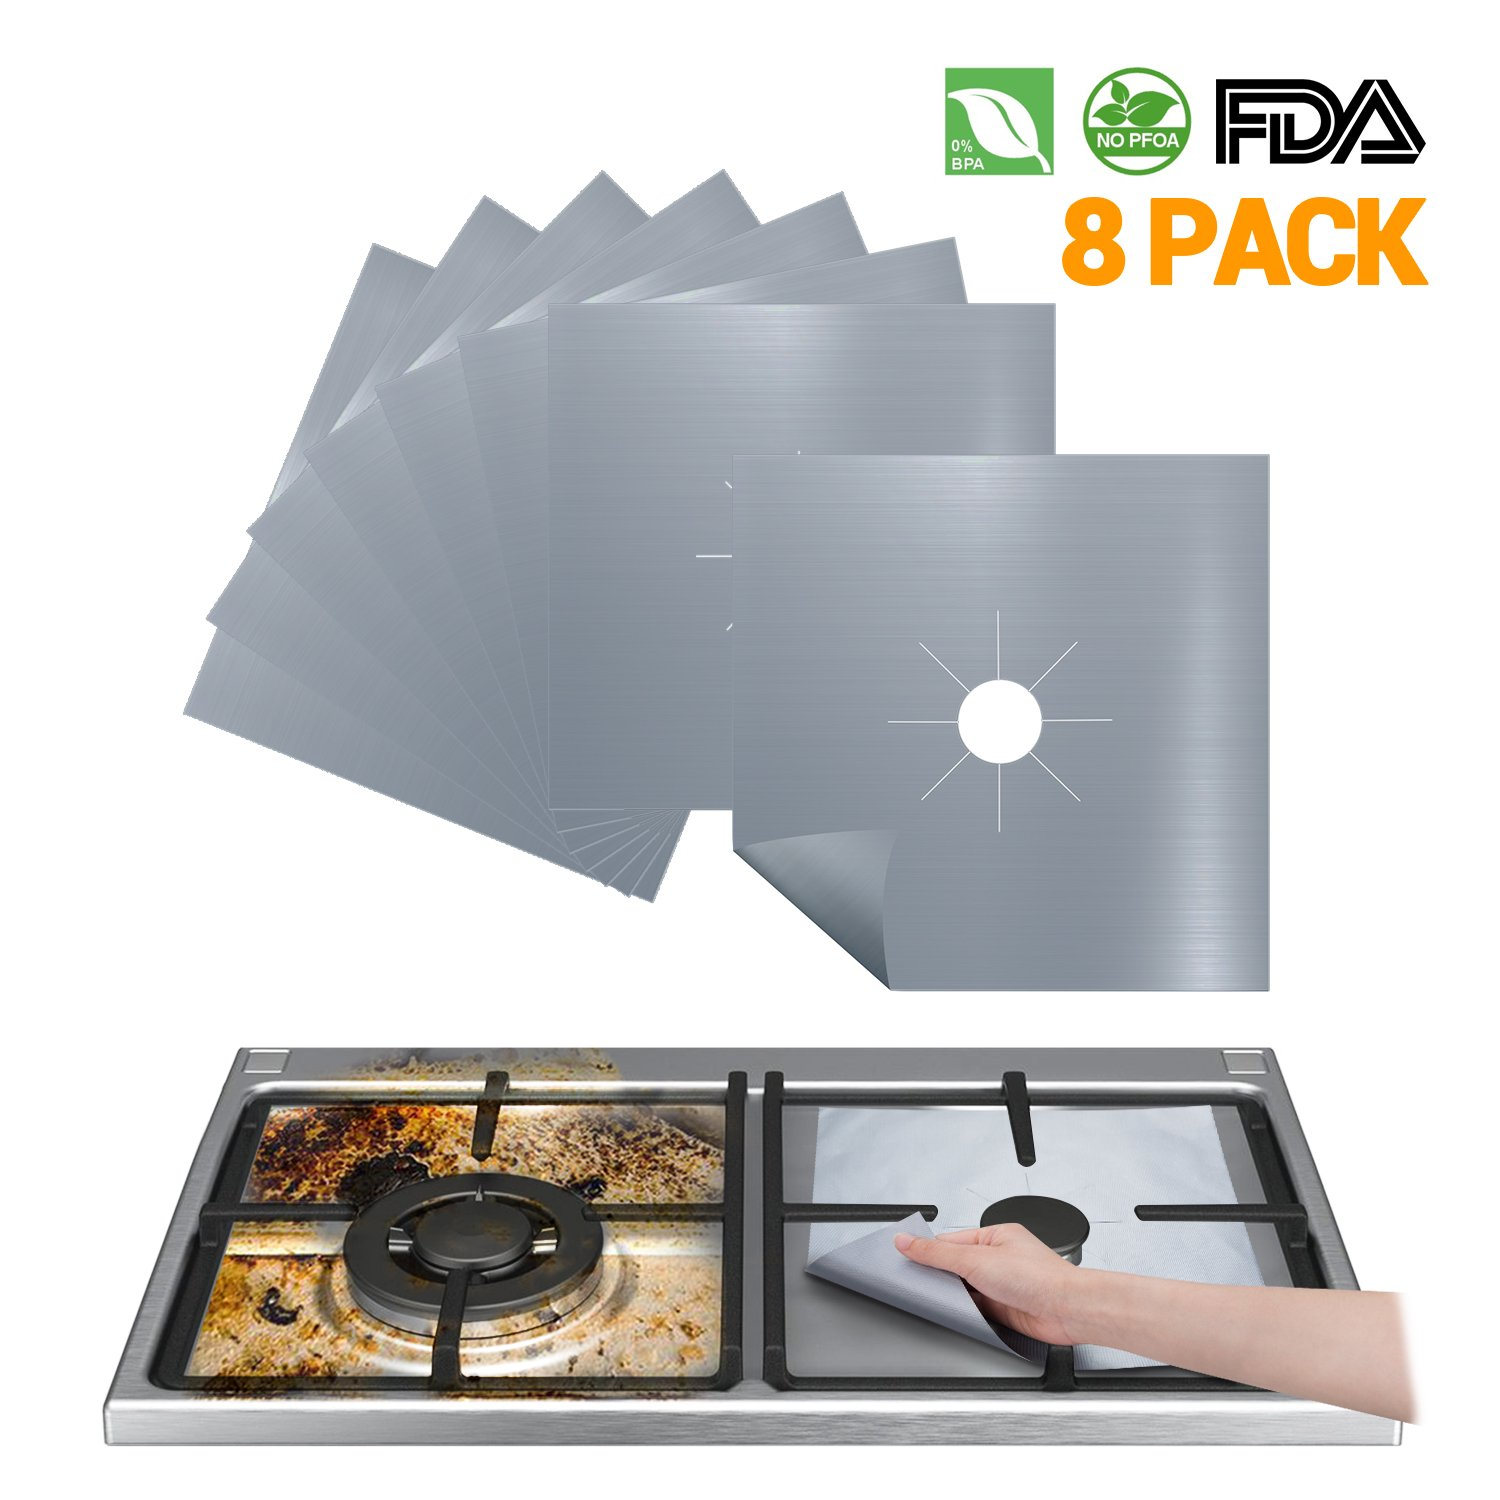 Stove Burner Covers Reusable Gas Stove Protector - FDA Approved Gas Range Protectors | Non-stick Stovetop Protector Liner - Heat Resistant BPA Free Non Toxic & Cuttable and Easy to Clean (Silver)